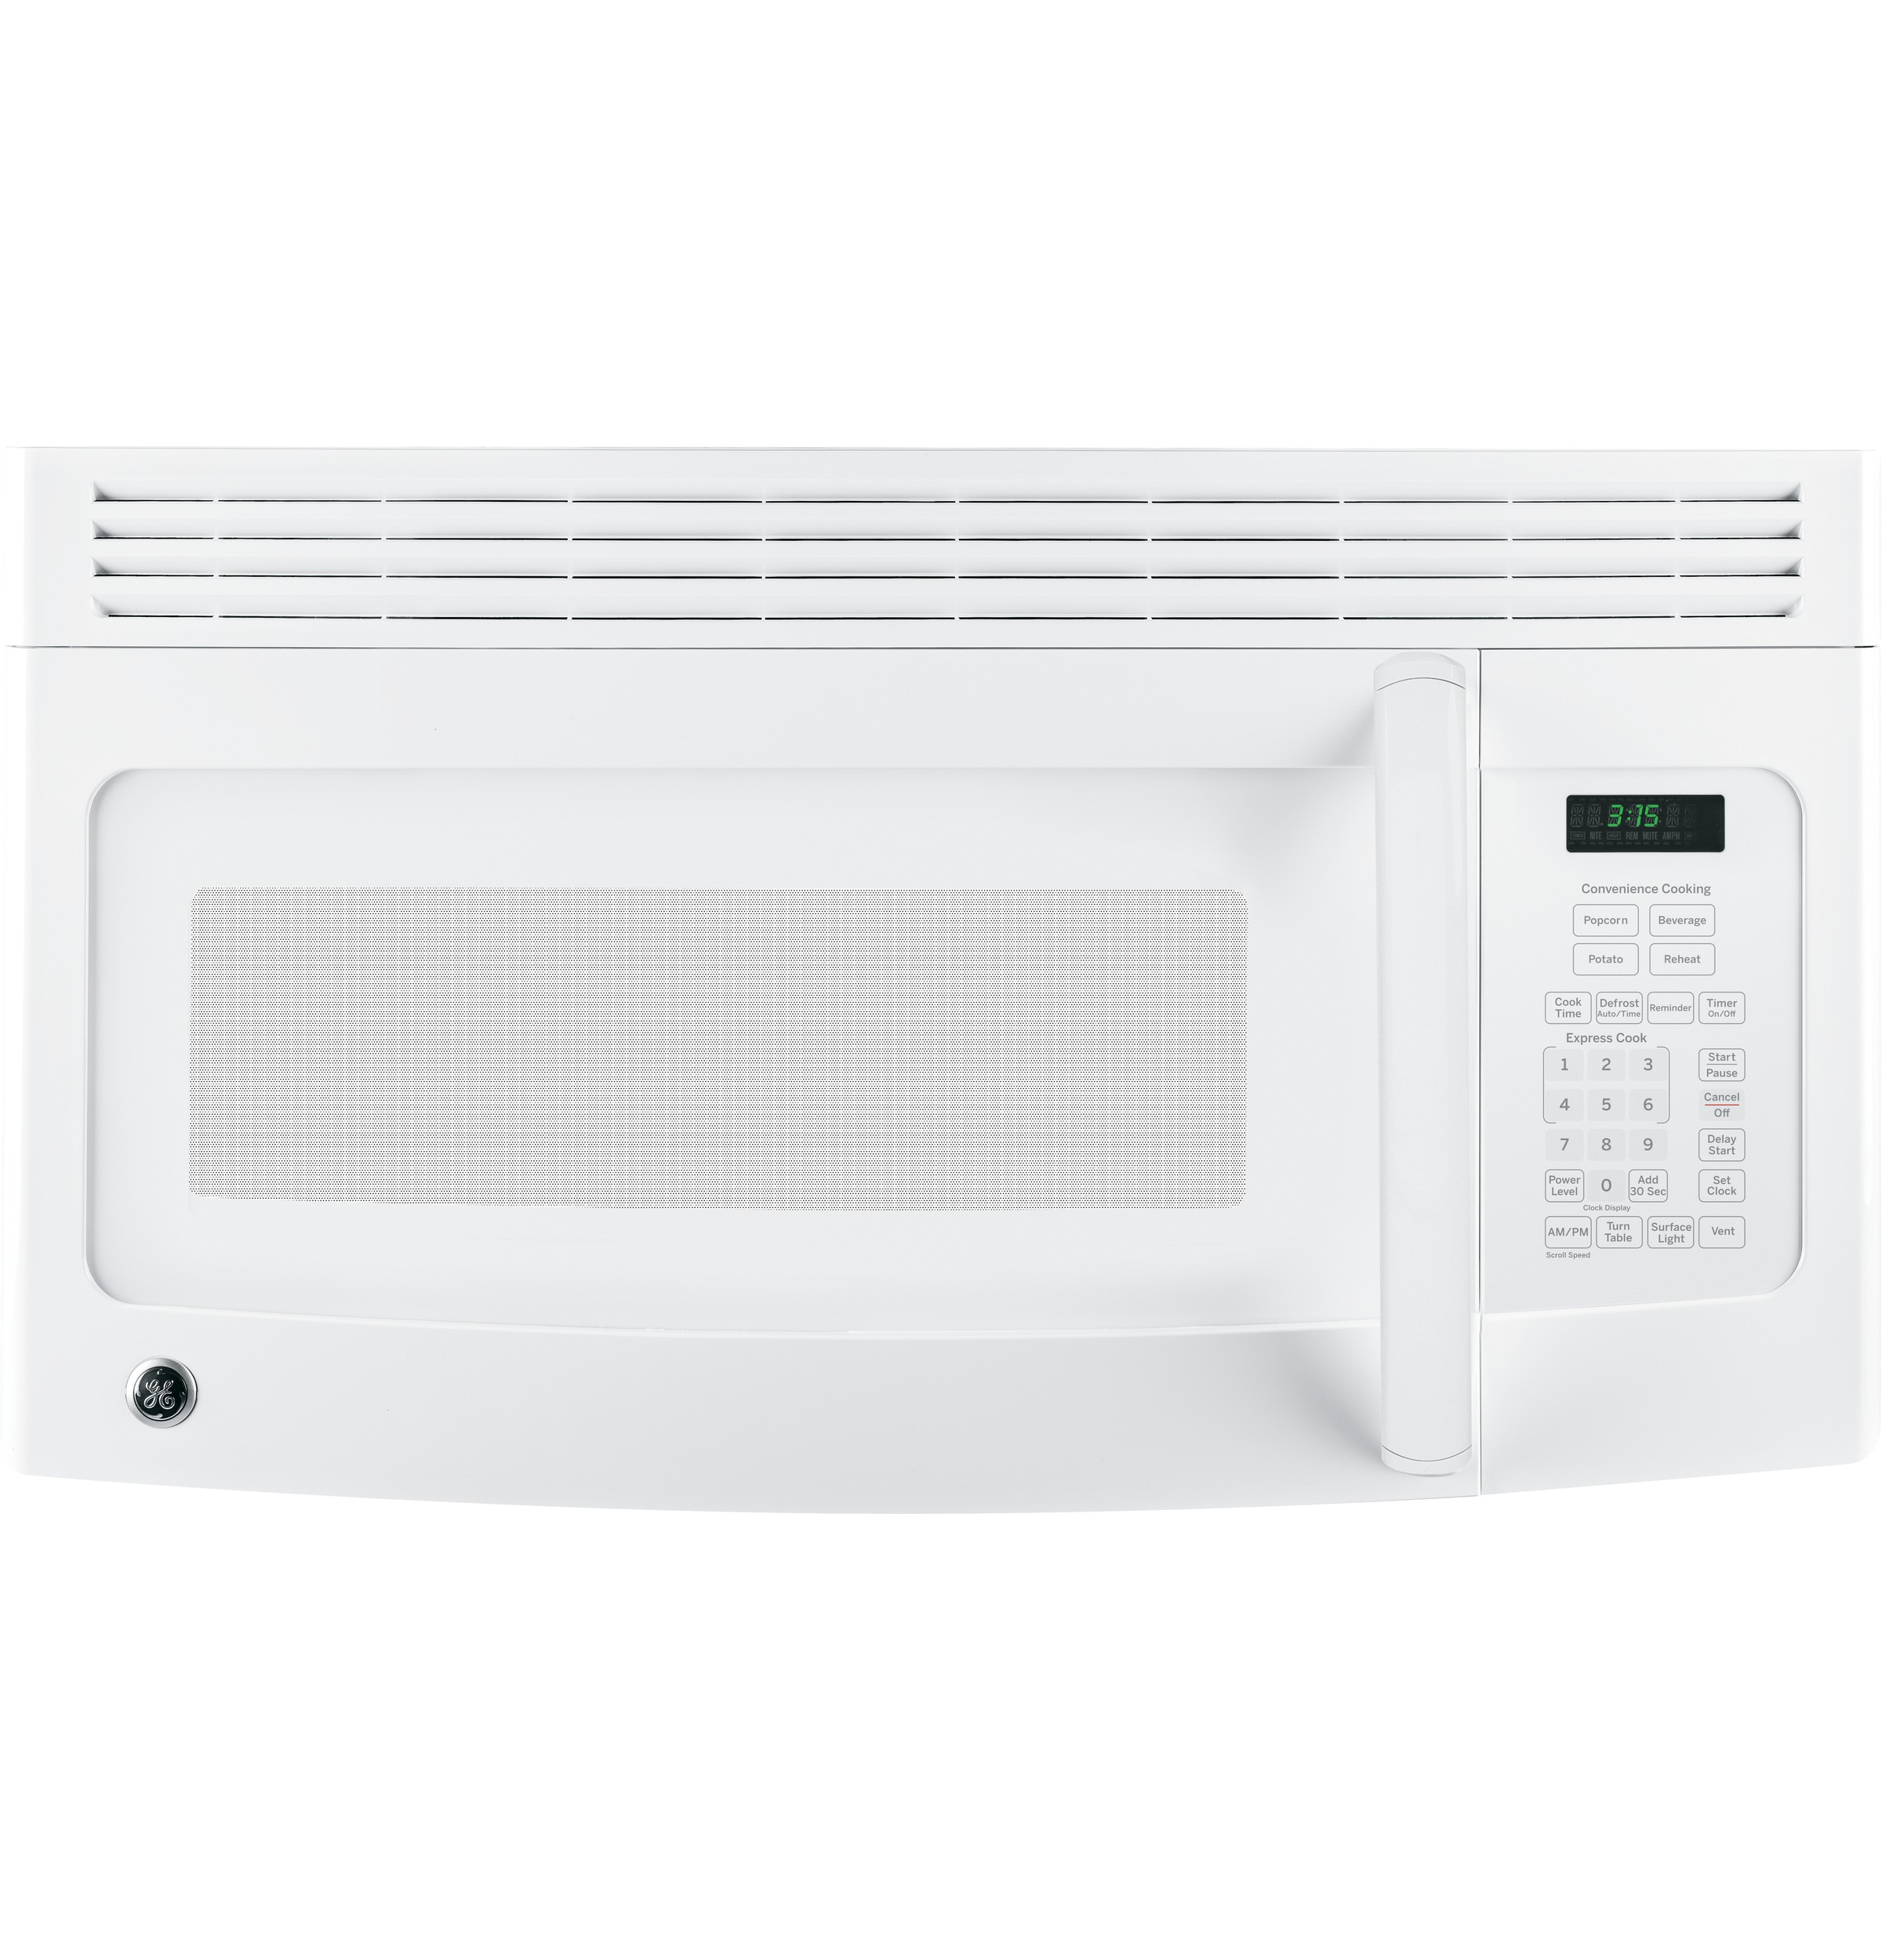 Microwave Oven Installation: GE Spacemaker® Over-the-Range Microwave Oven